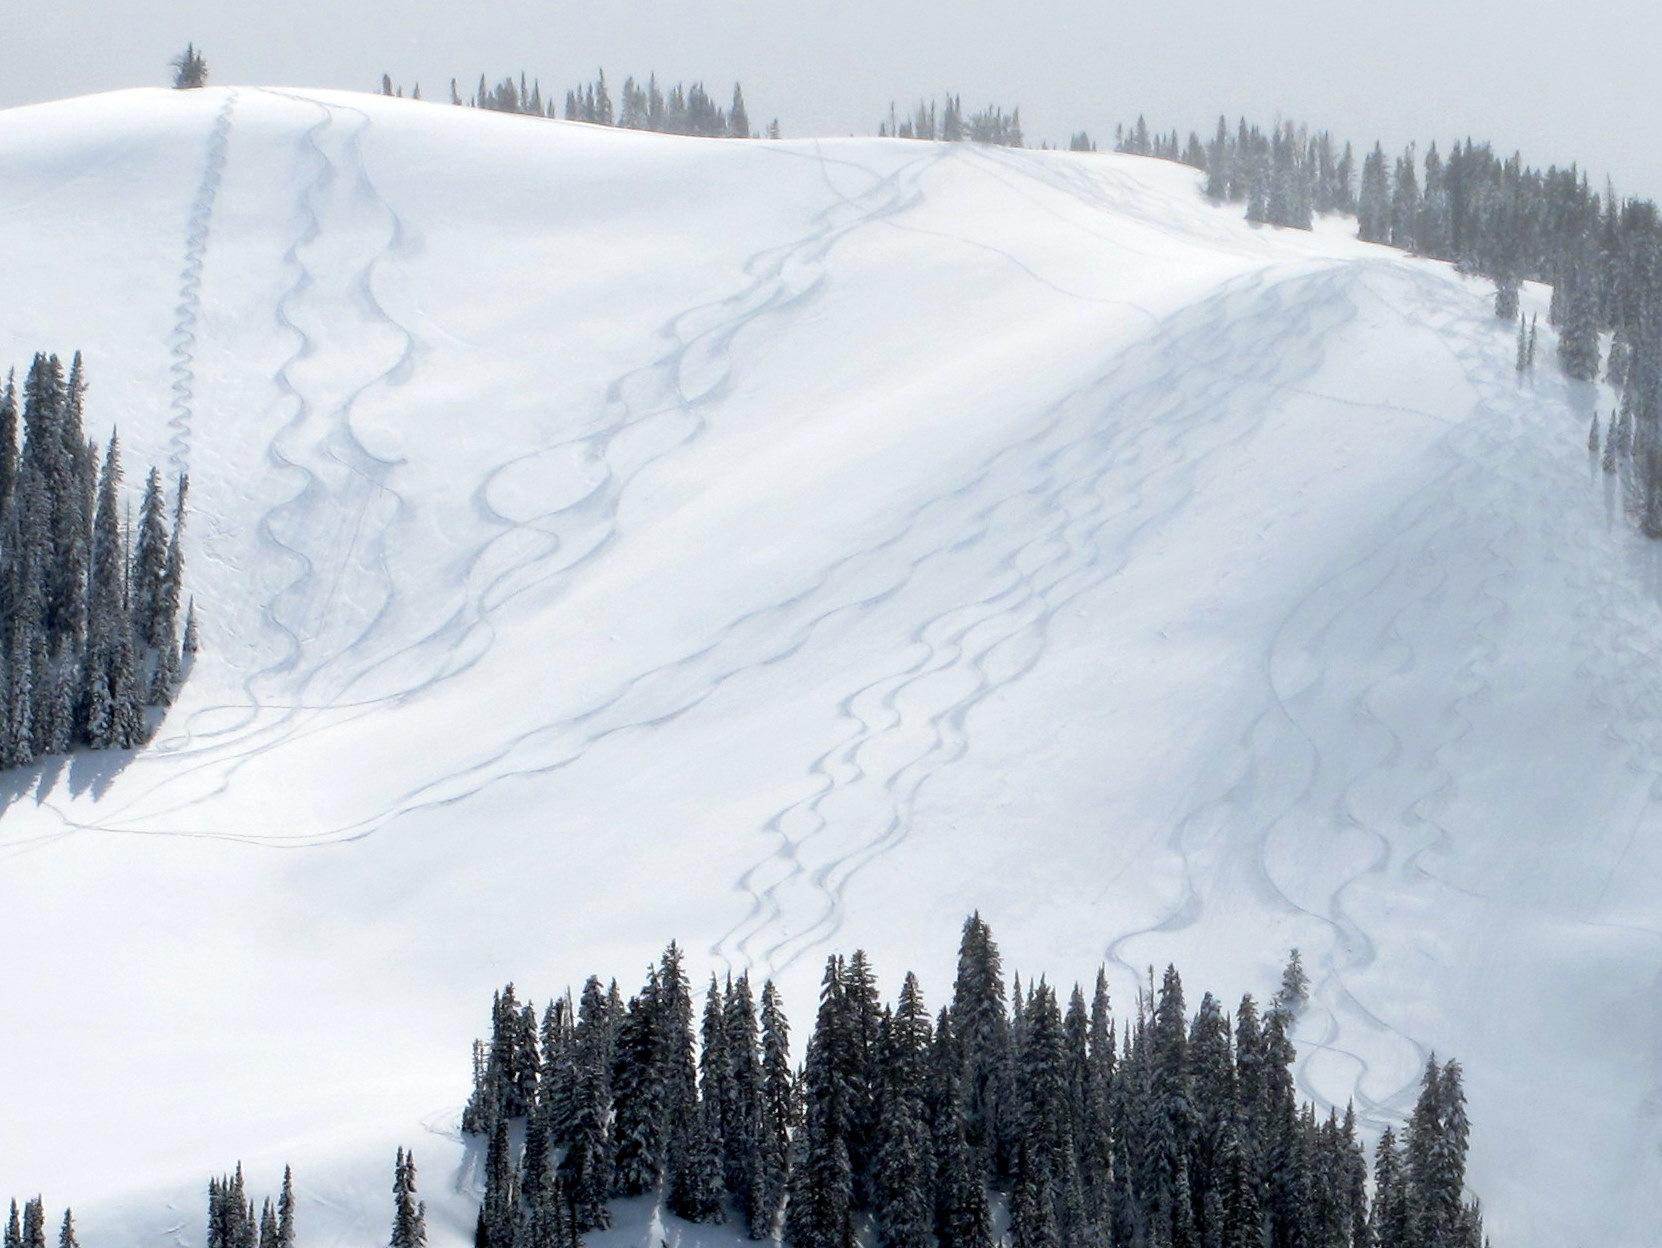 The Mountain Pulse Photo of the Day 04/19/11 - Backcountry Skiing on Teton Pass